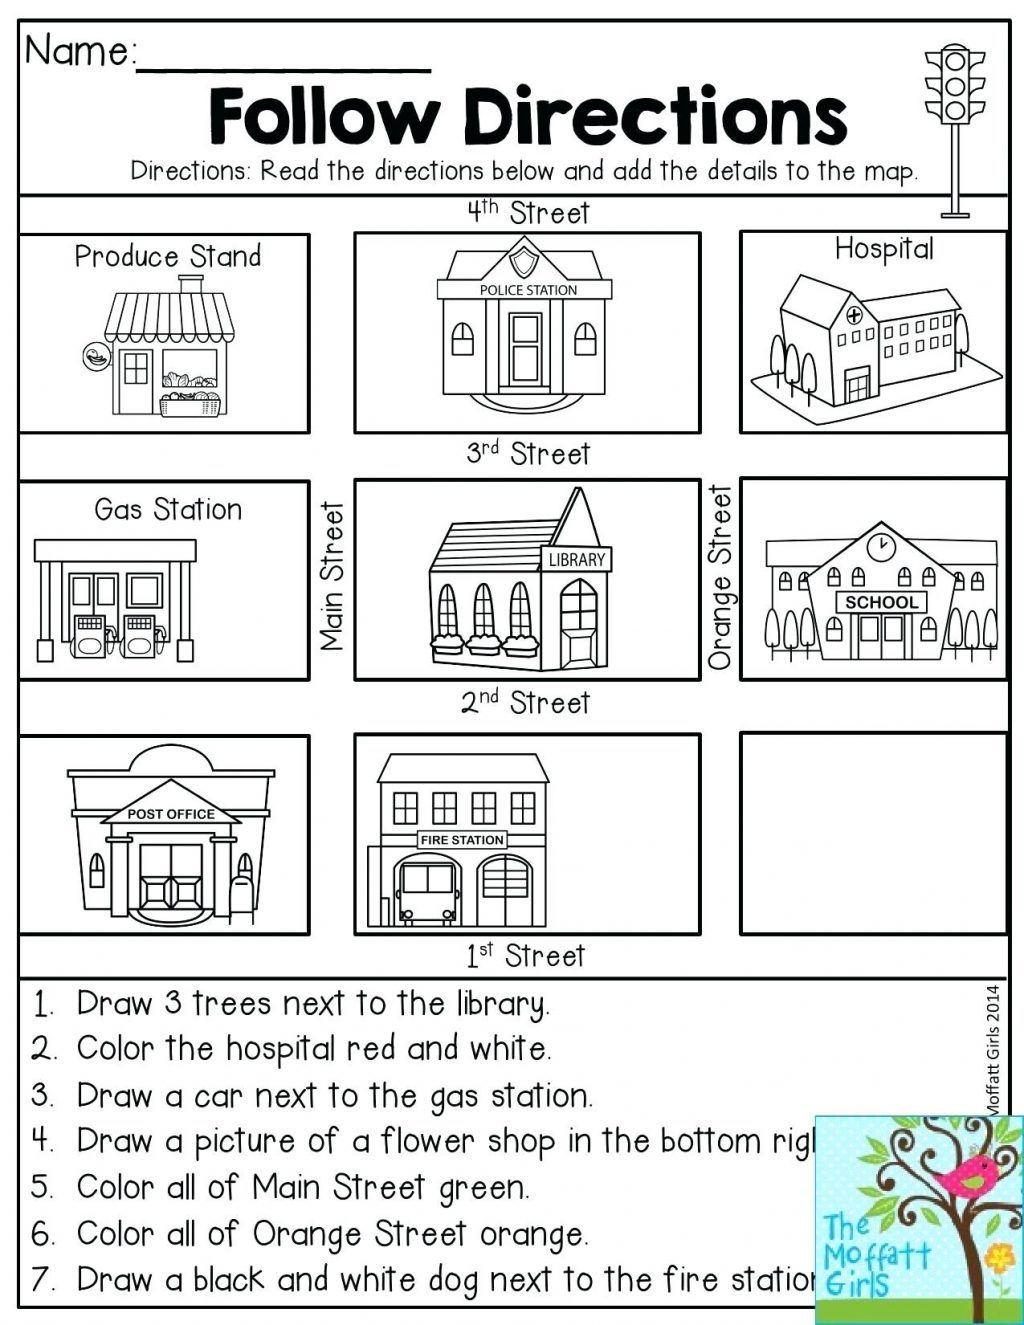 Free Geography Worksheets Chesterudell Kindergarten Social Studies Map Skills Worksheets Teaching Social Studies